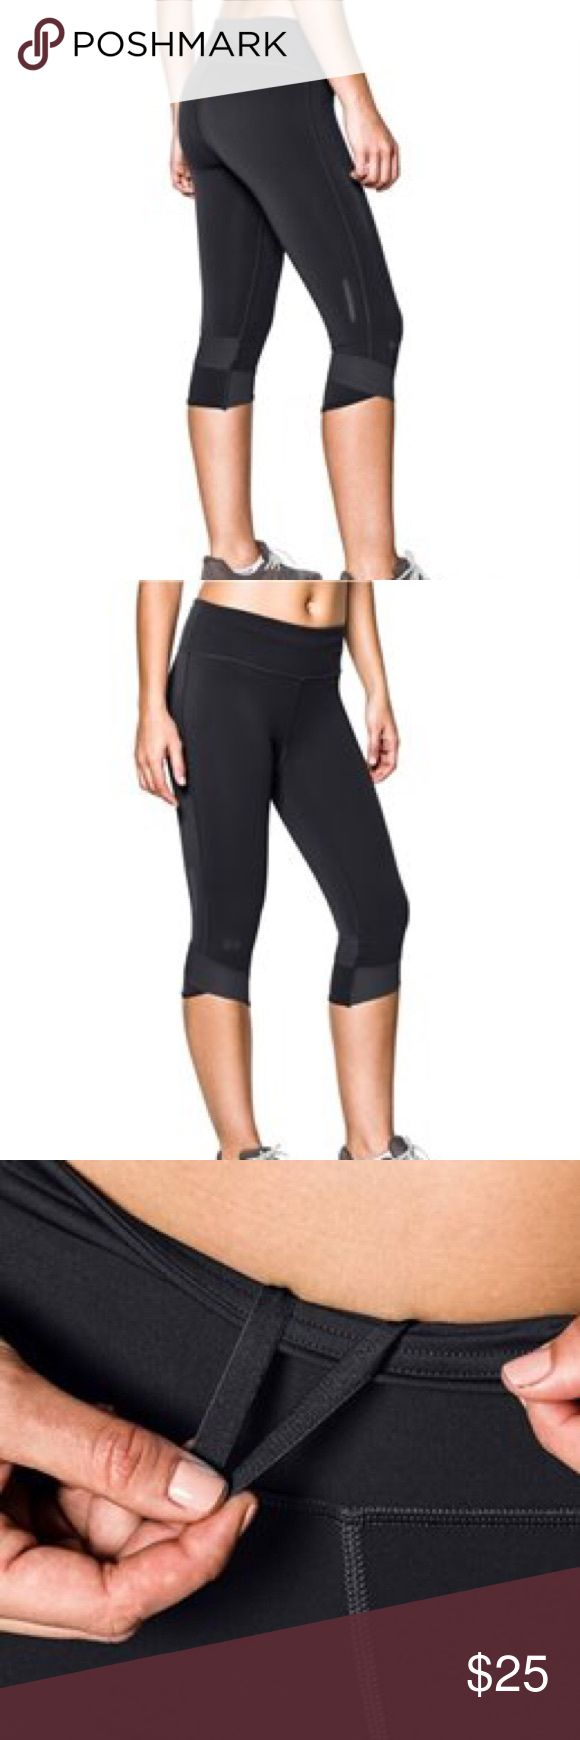 Under Armour Fly By Compression Capri Step up your game with the Under Armour® Women's Fly-By Compression Capris. These fitted capris feature UA compression technology for increased muscle power and reduced recovery time. 360° Reflectivity keeps you visible in low-light conditions, while an elastic waistband promotes a secure fit for those long training sessions. A brushed, matte finish gives you a clean, athletic look so you can show your sporty side in these UA capris. Gently used! Lots of…